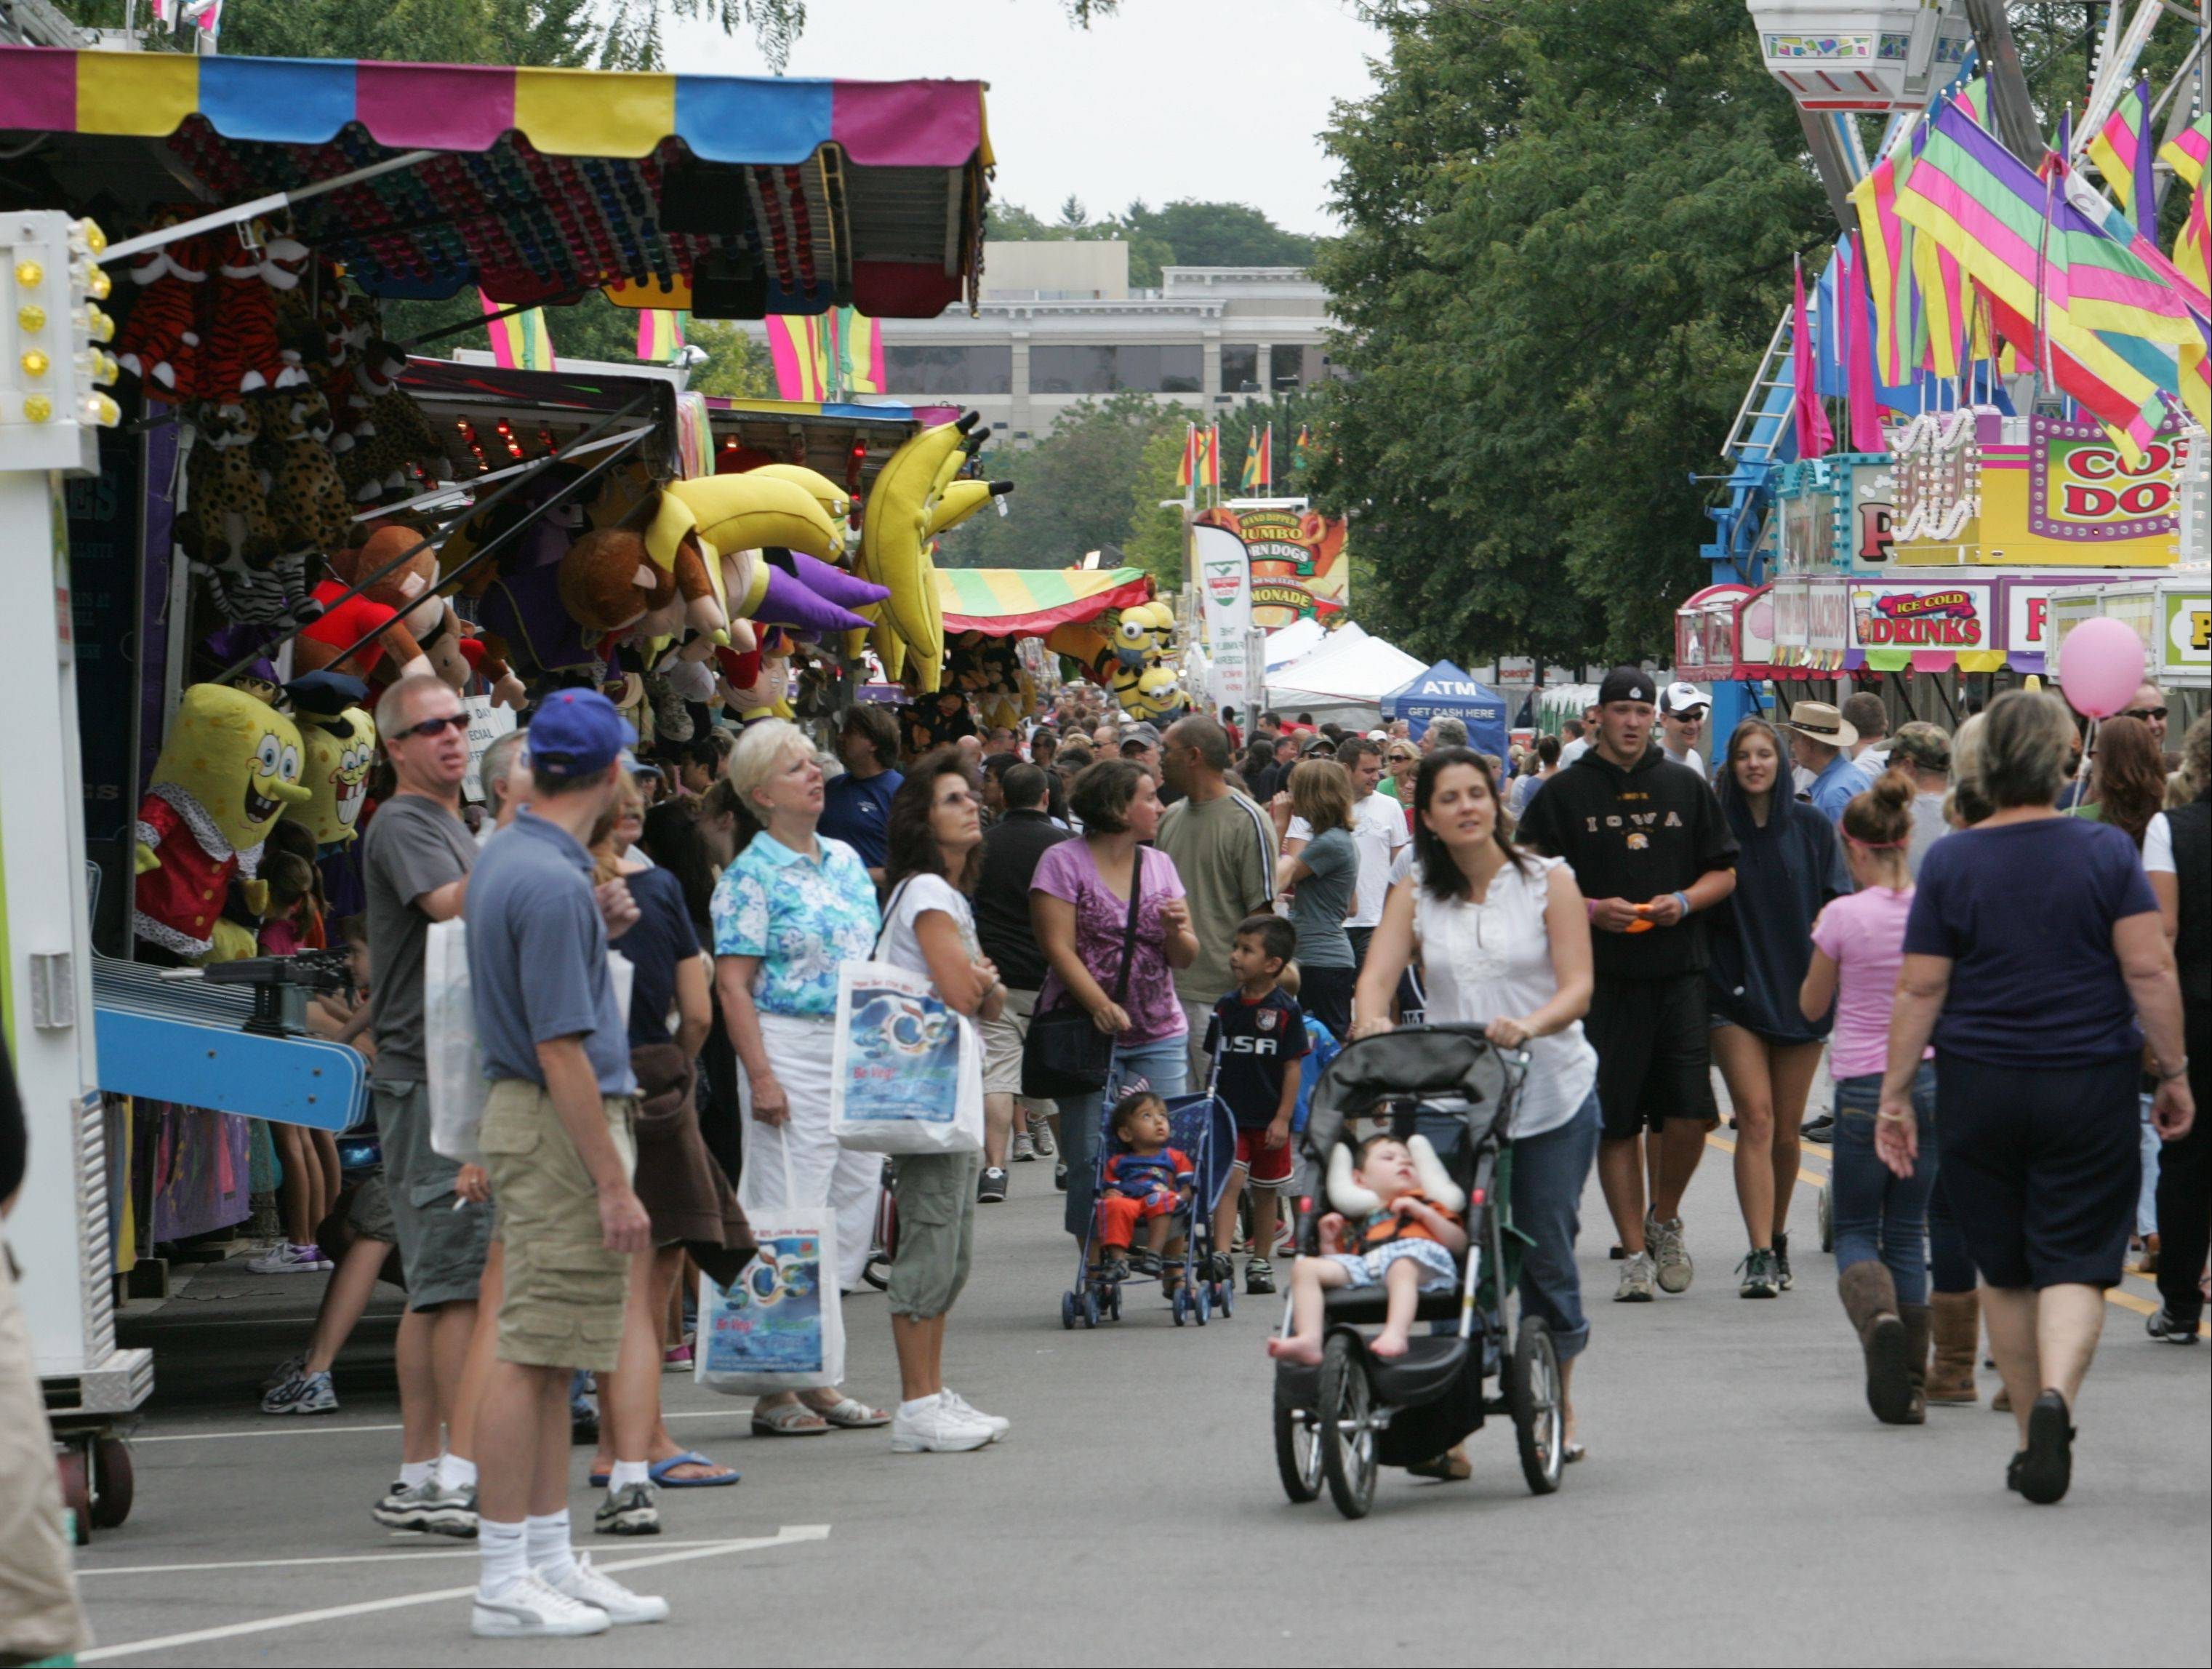 Thirsty visitors to this year�s Last Fling festival in Naperville will have to buy beverage tickets worth $1 each before purchasing drinks, festival organizers told the city�s liquor commission Thursday.